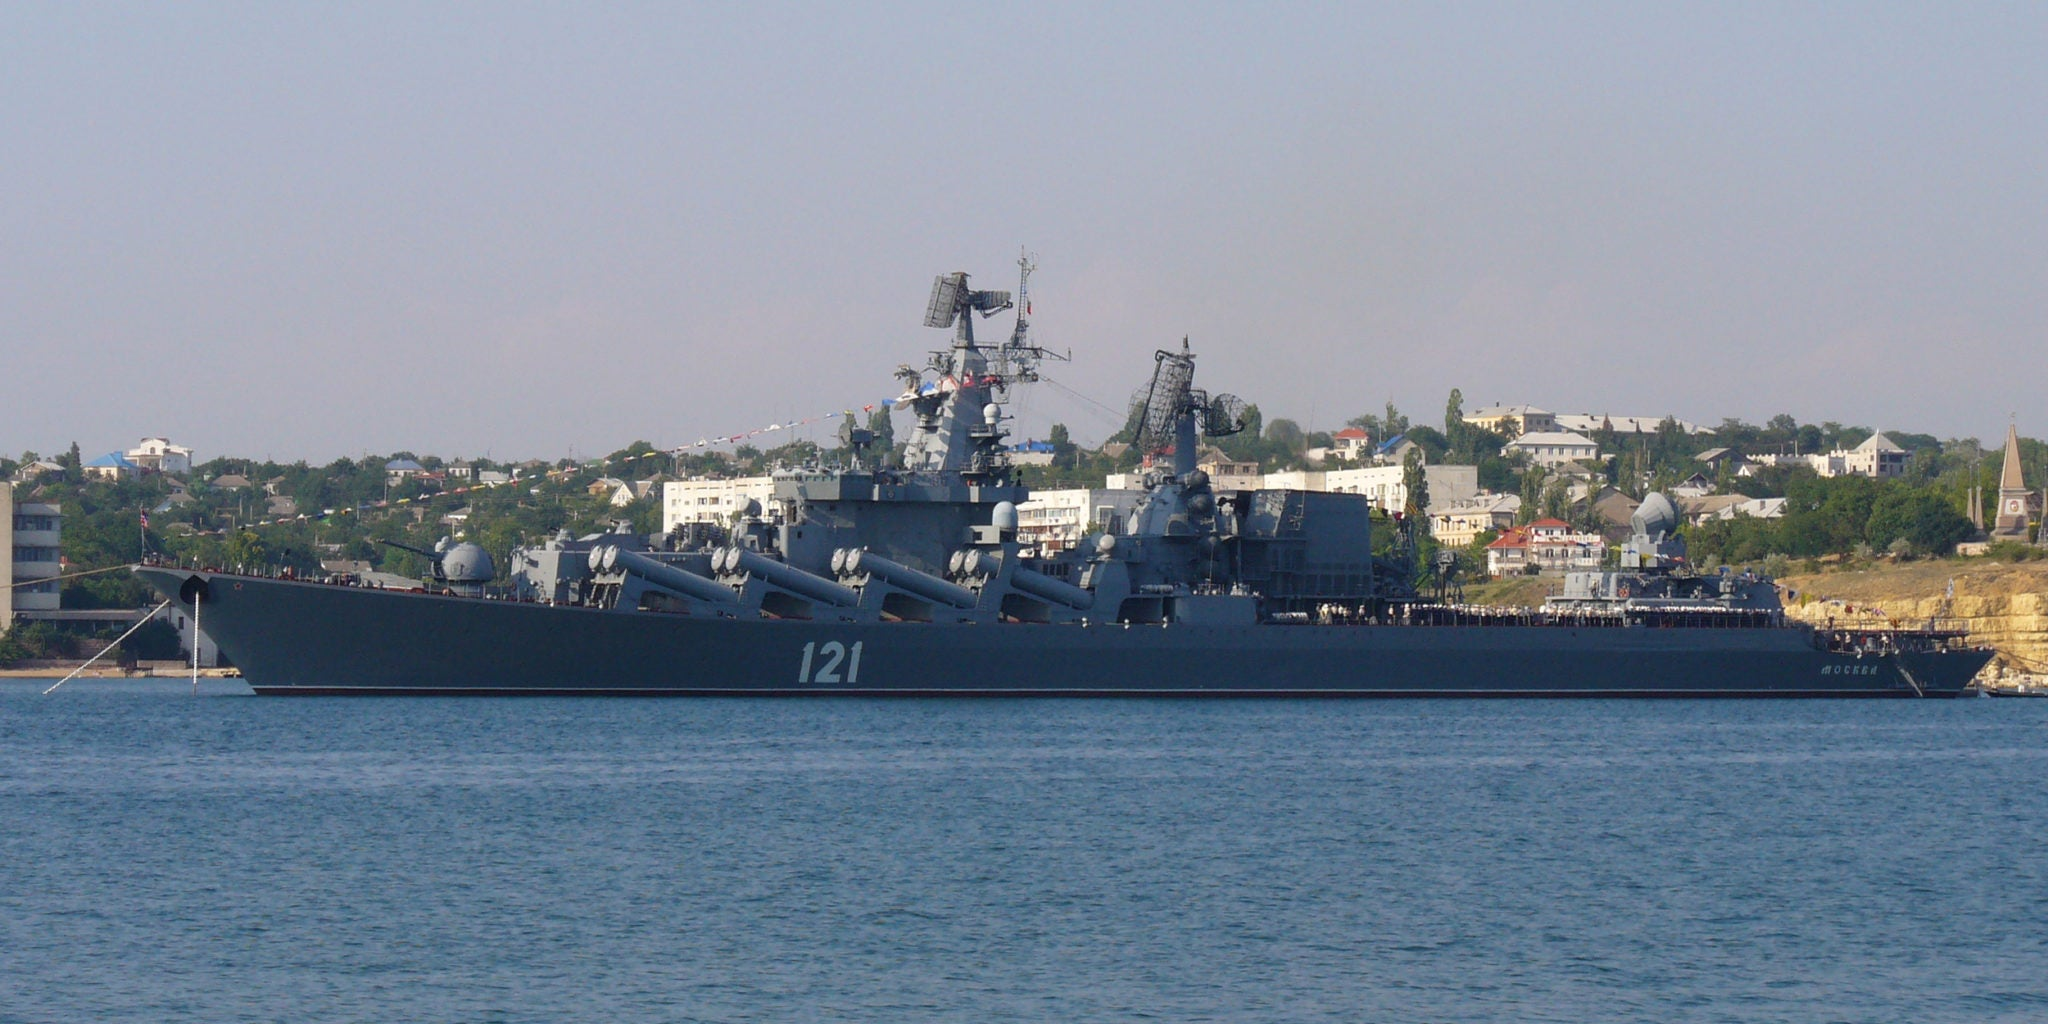 Here's a closer look at Russia's powerful missile cruiser